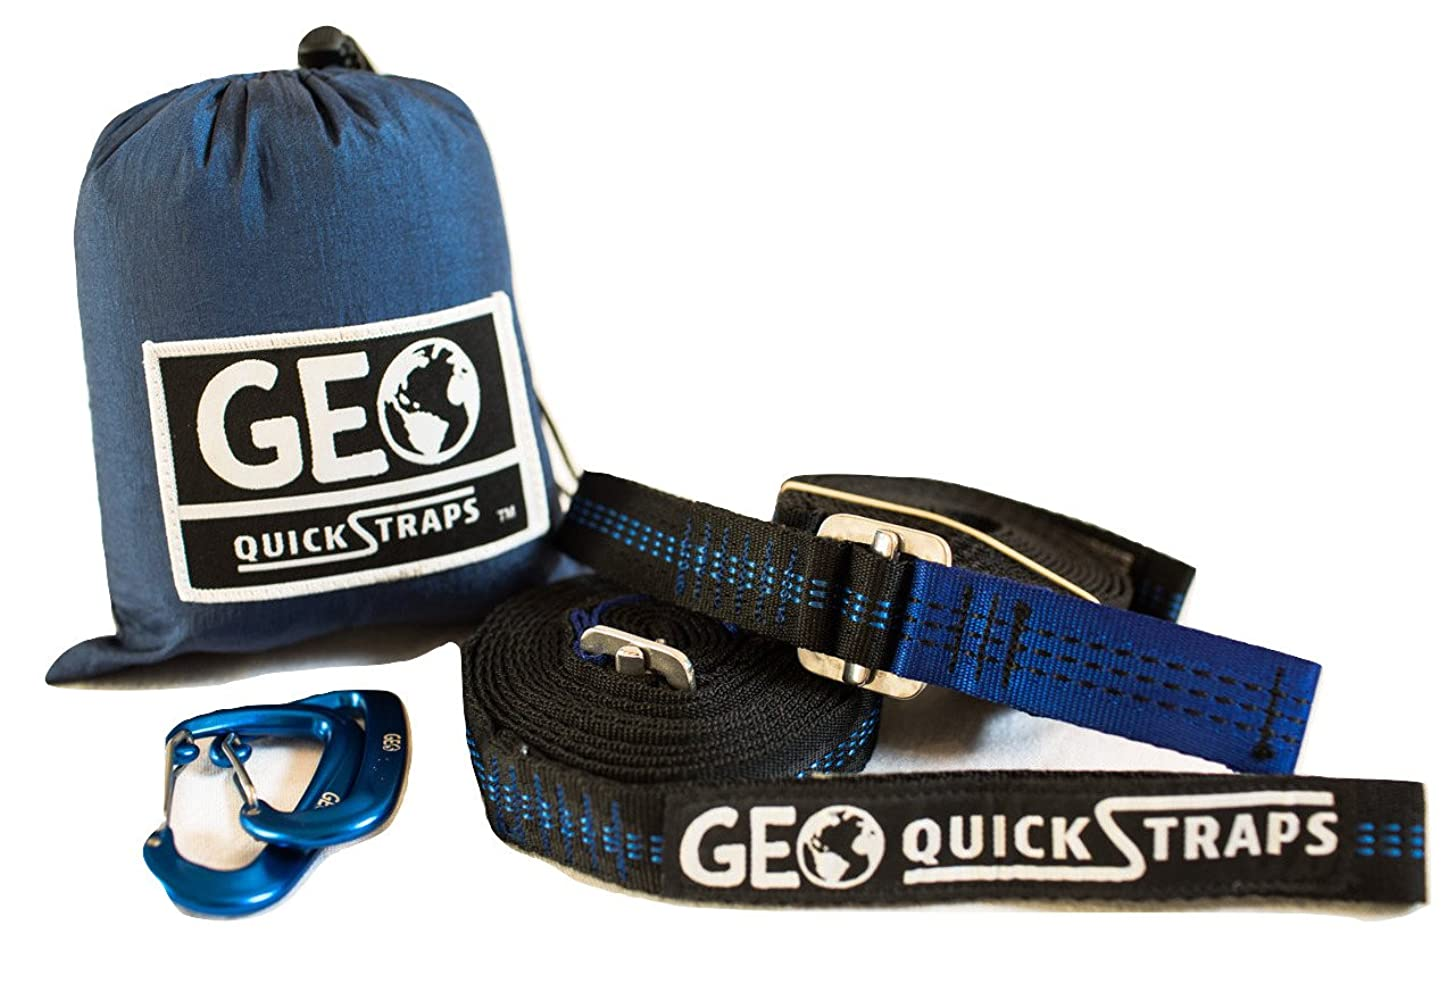 Hammock Straps XL (2) Quickstraps-New Design, Camping, Hammocking 2 Carabiners Set - Heavy Duty Portable Tree Friendly Easy Adjustable Hammock Accessories | Compatible w/ all Camping Hammocks - By GEO